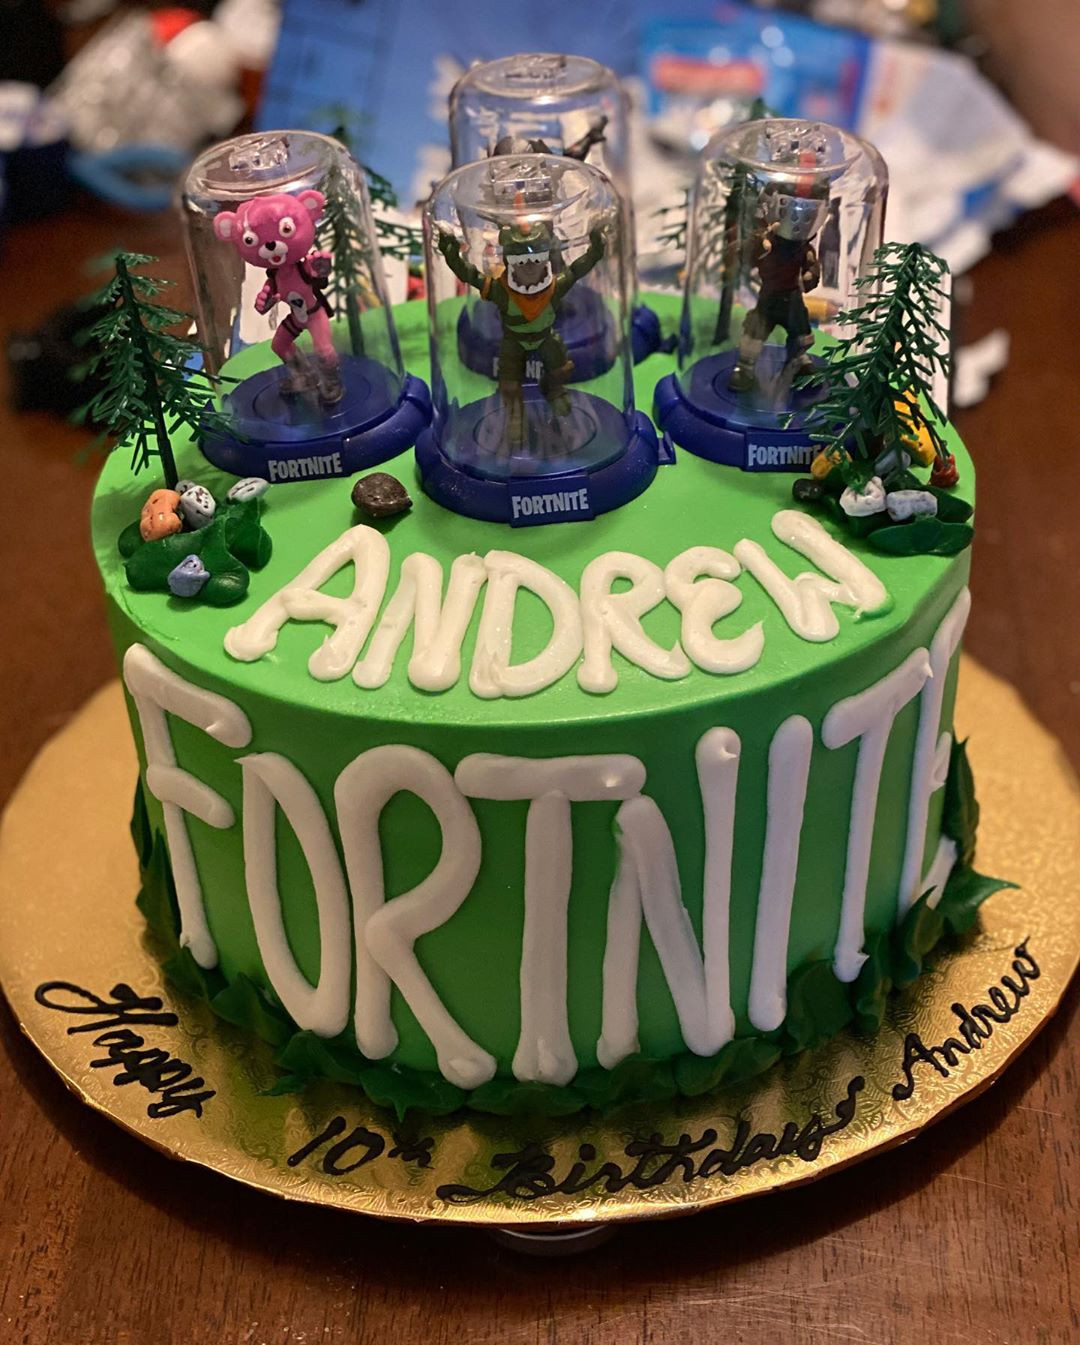 46 Amazing Fortnite Cakes and Cupcakes for an Epic Birthday Bash!